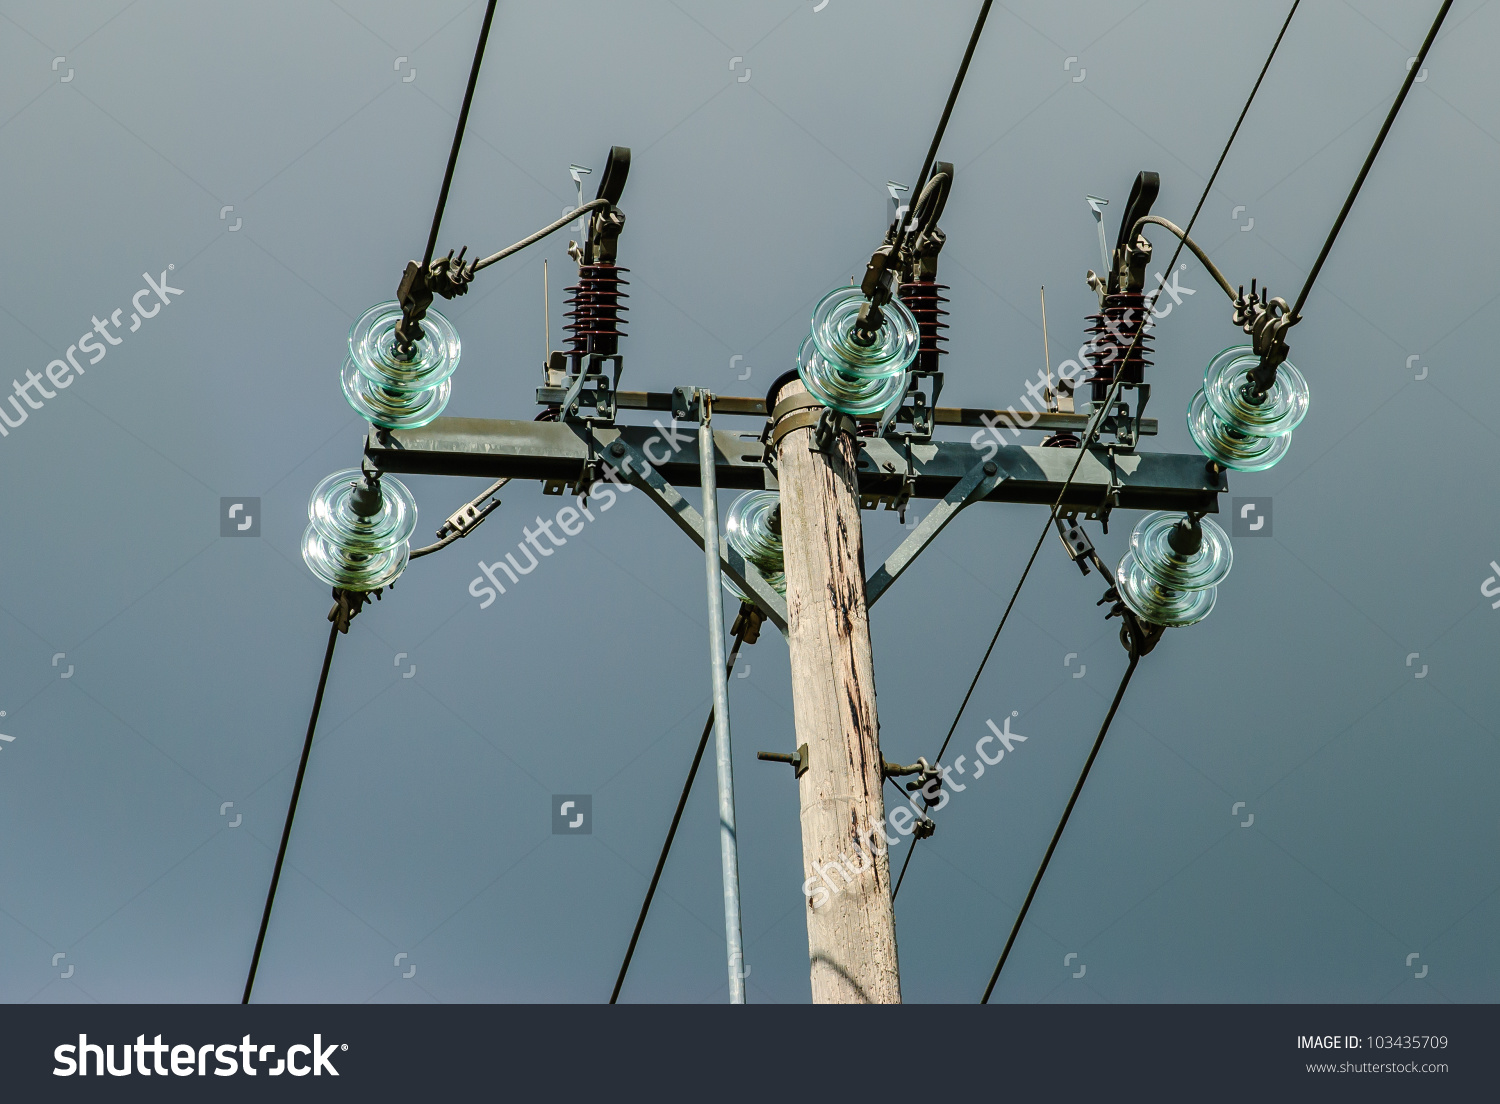 Power Pole Lightning Conductors Glass Insulation Stock Photo.